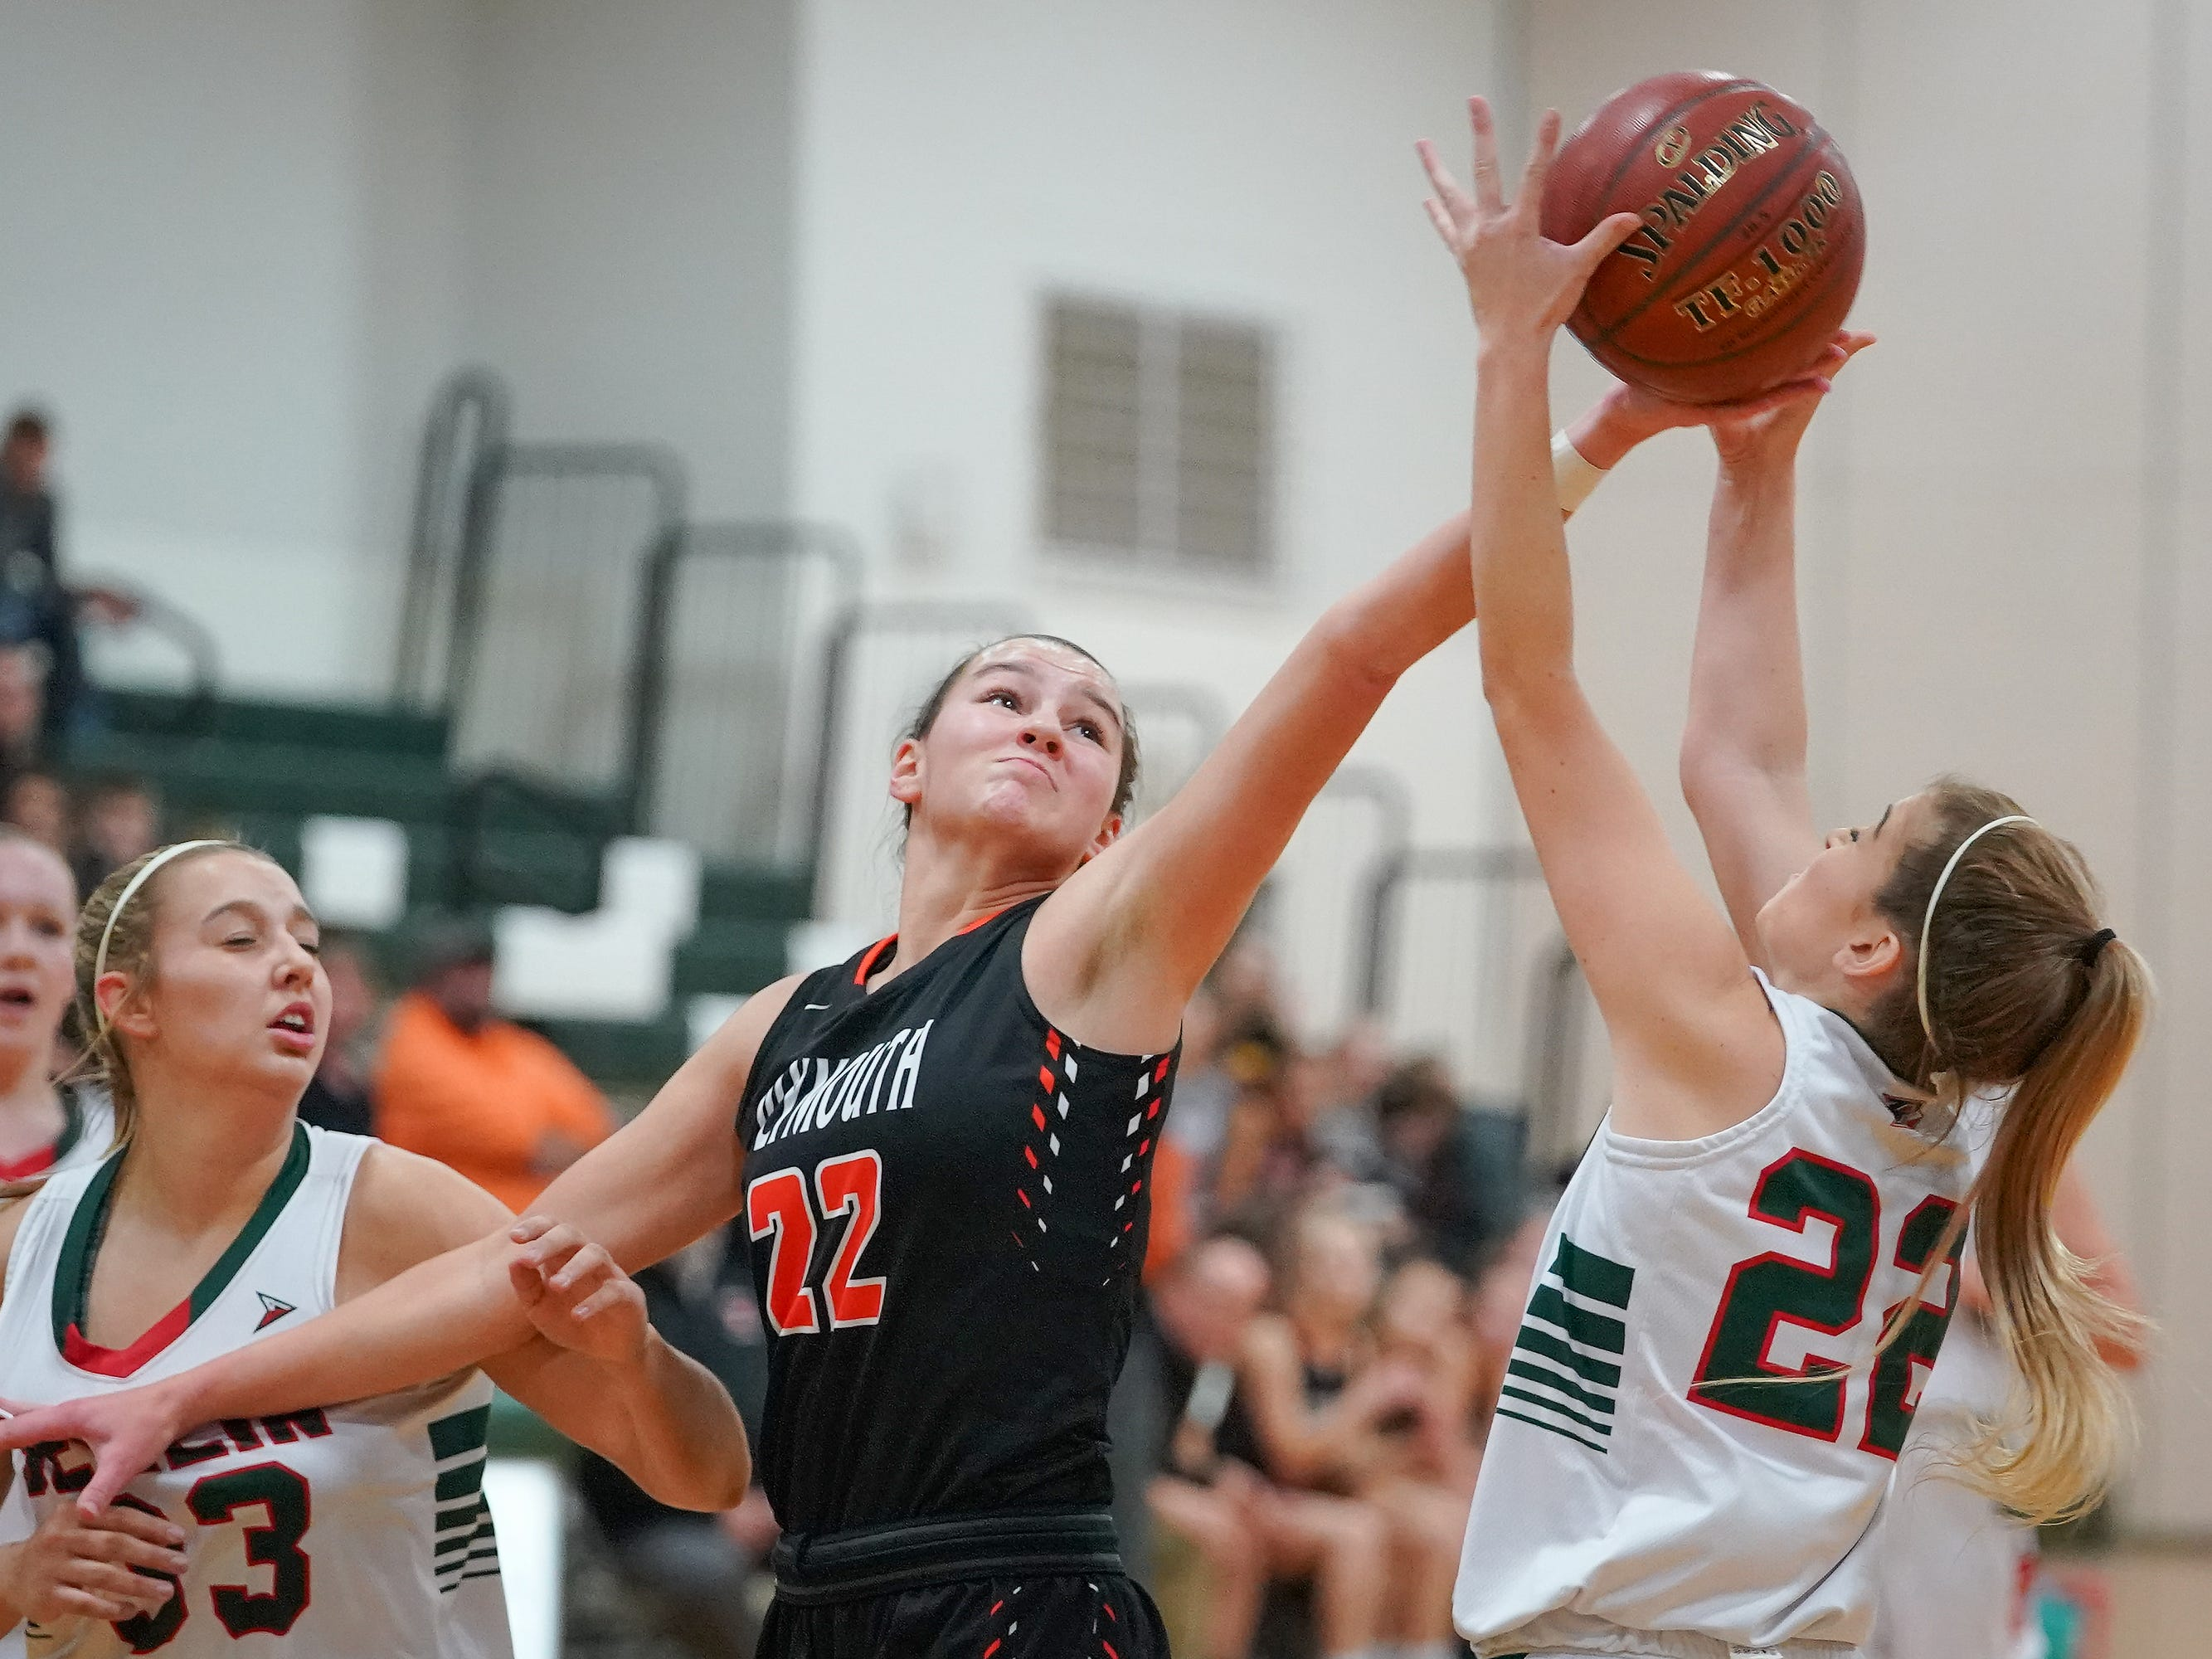 Mari Beltran (22) of Berlin and Kalani Smith (22) of Plymouth battle for a rebound. The Berlin Indians hosted the Plymouth Panthers in an East Central Conference basketball game Thursday evening, December 13, 2018.